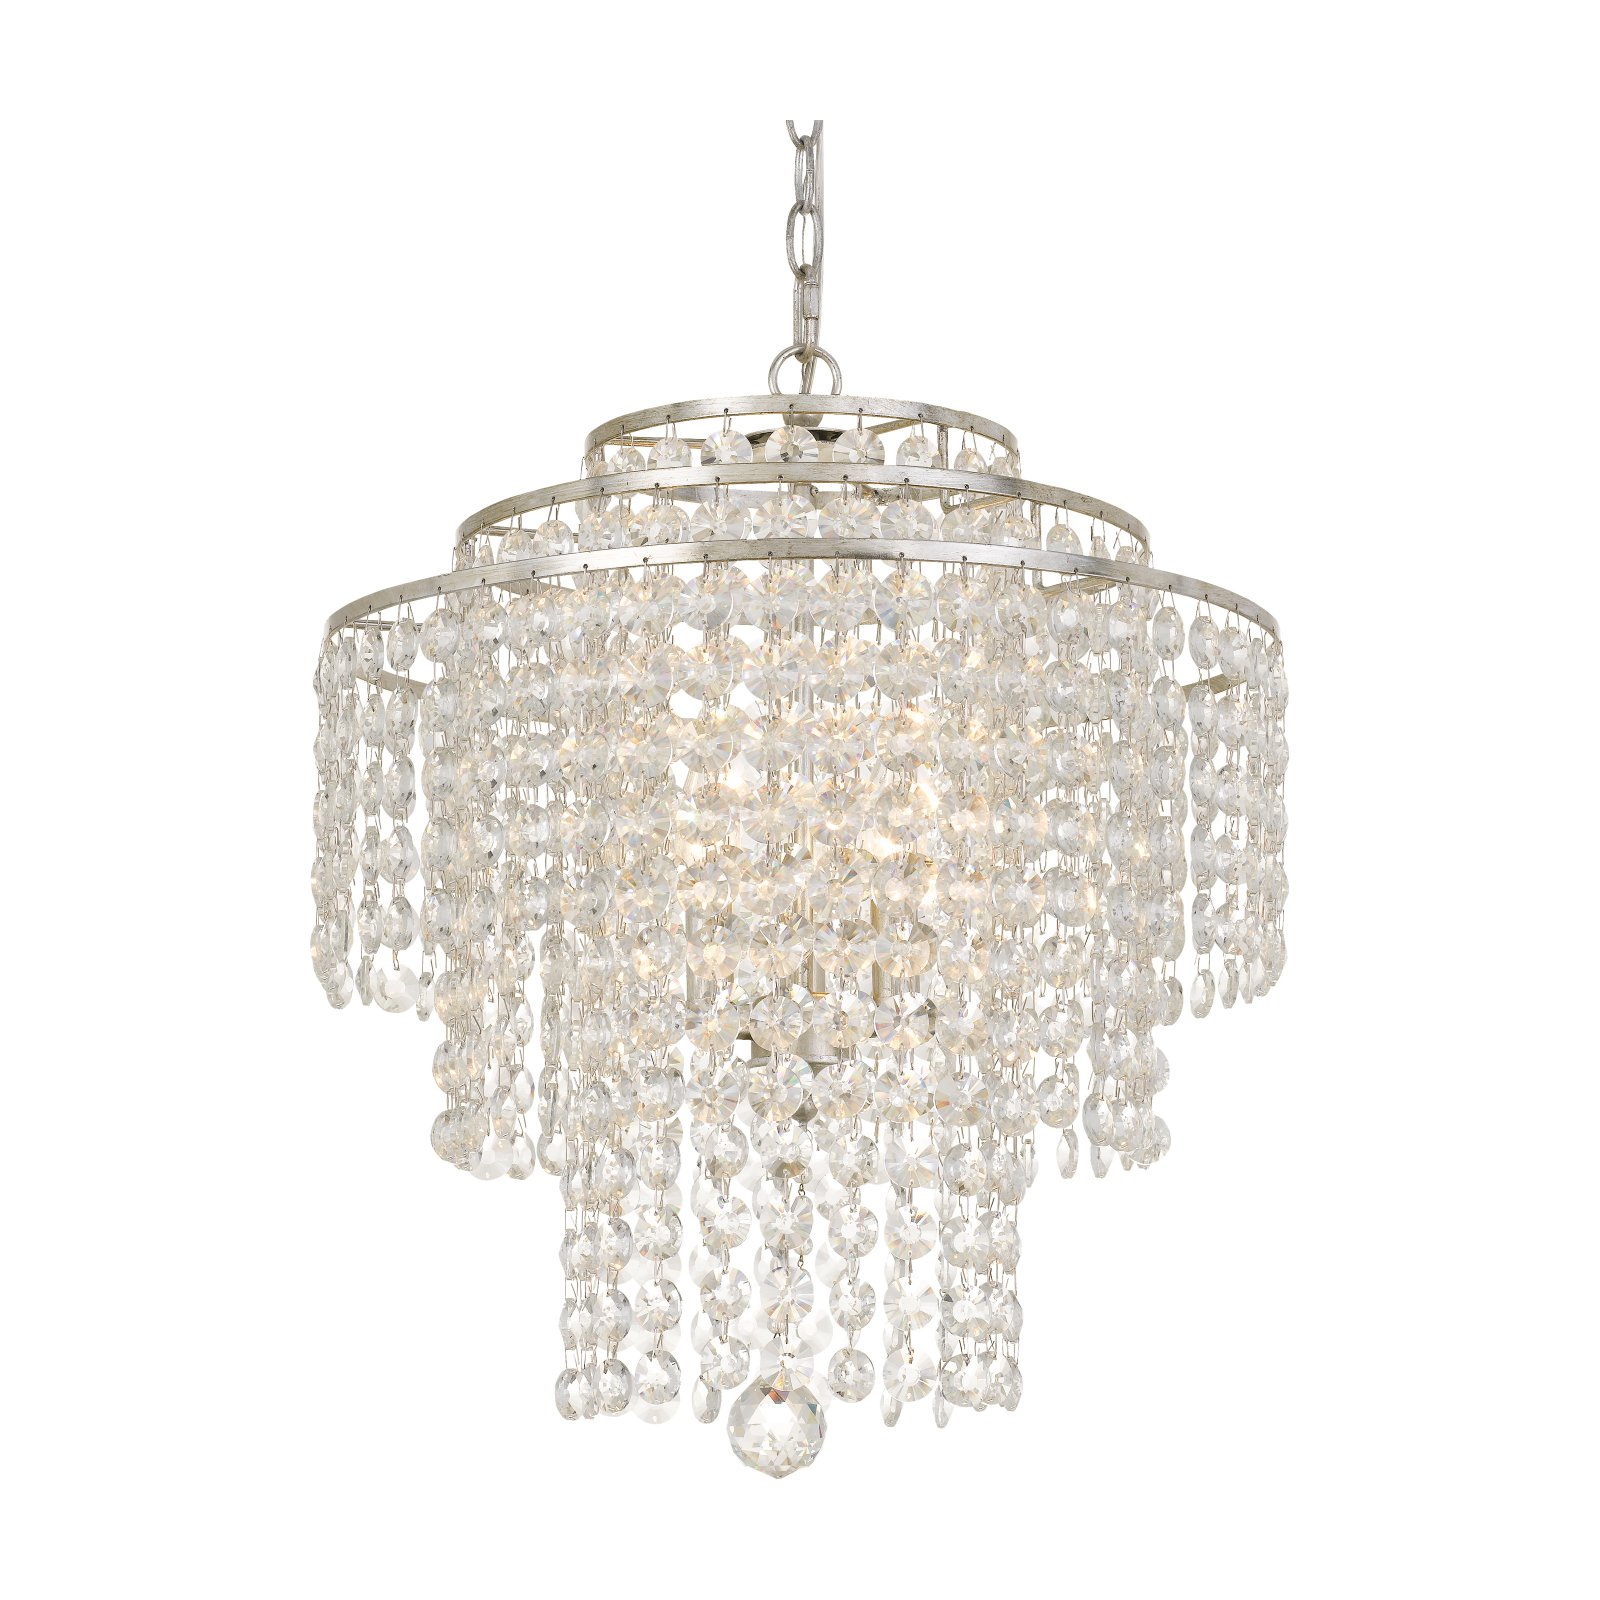 Elight Design Ed12603 Crystal Chandelier | Products In 2019 throughout Mcknight 9-Light Chandeliers (Image 14 of 30)